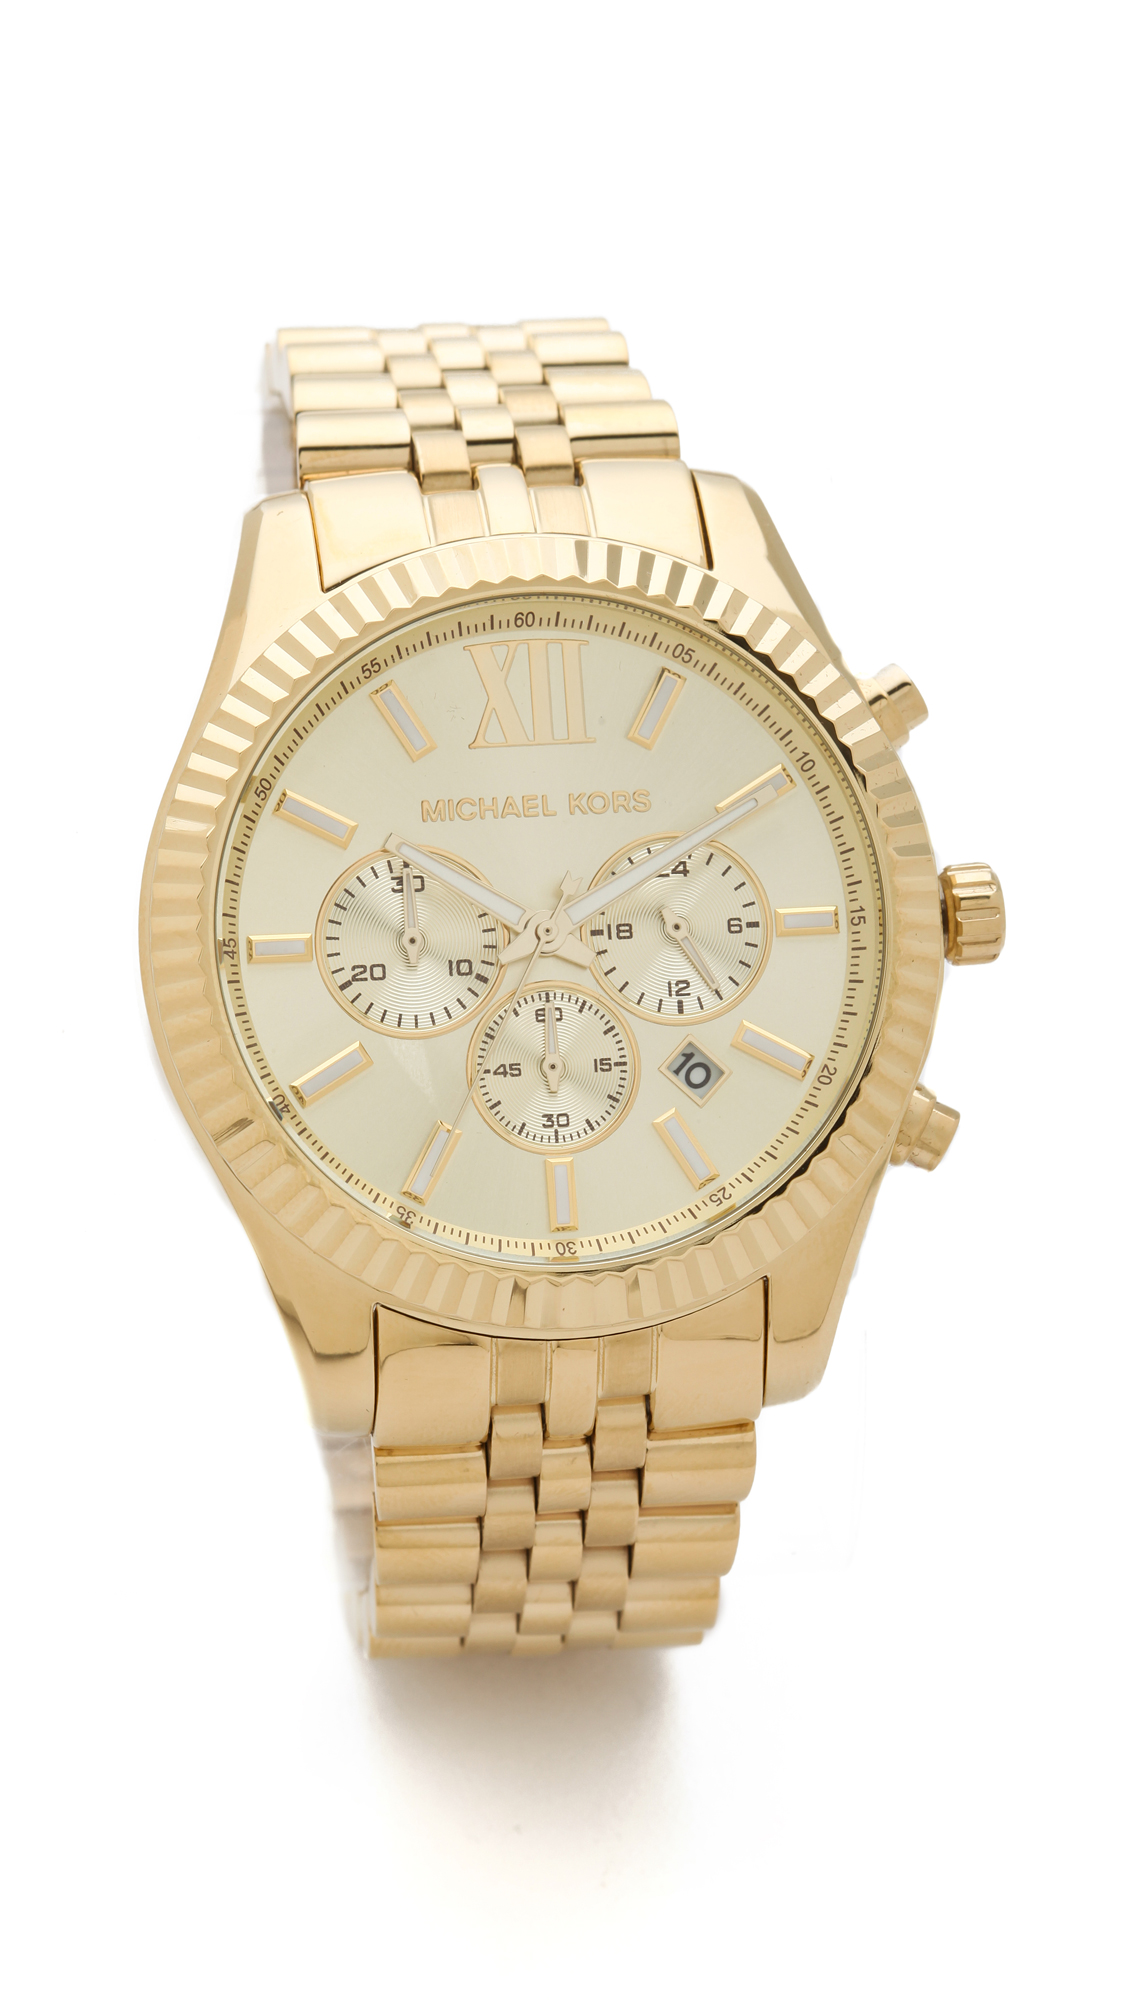 michael kors men s oversized lexington watch gold in metallic lyst gallery previously at shopbop · women s michael kors lexington women s gold watches